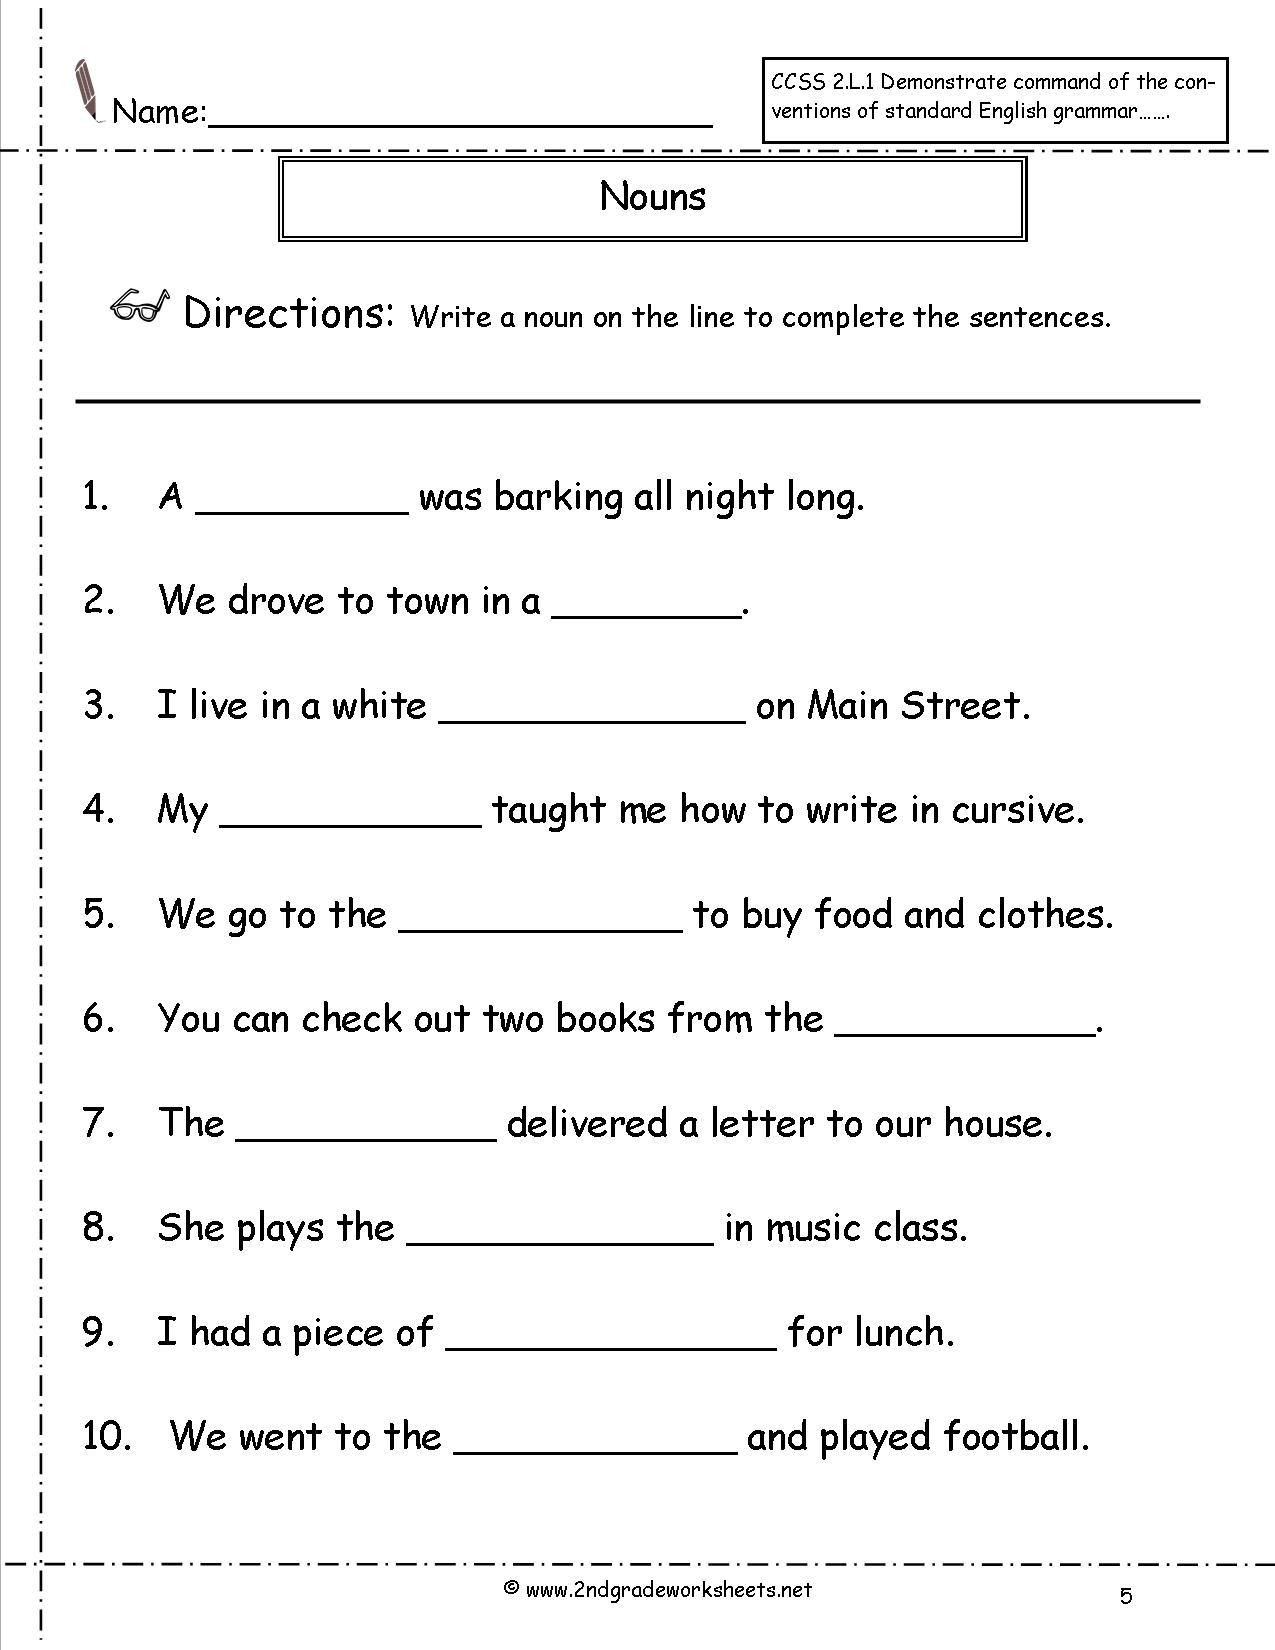 Homophones Worksheets for Grade 2 11 Best Homophones Worksheets for Grade 1 Images On Best